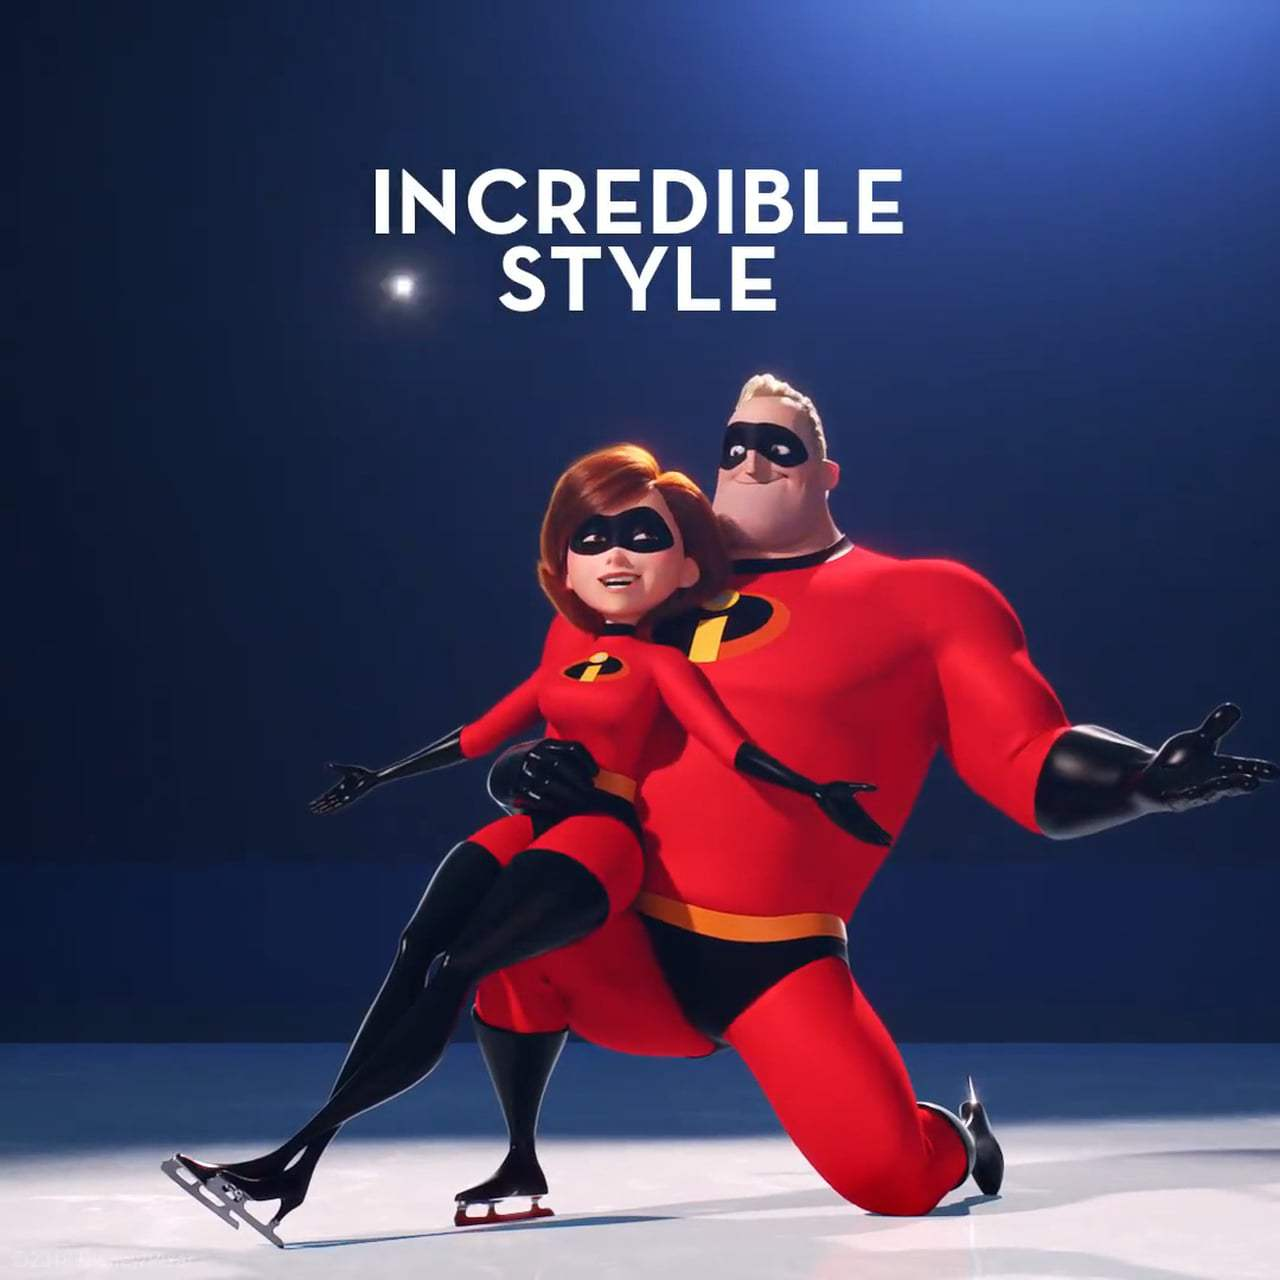 The Incredibles 2 TV Spot - Incredible Style (2018)